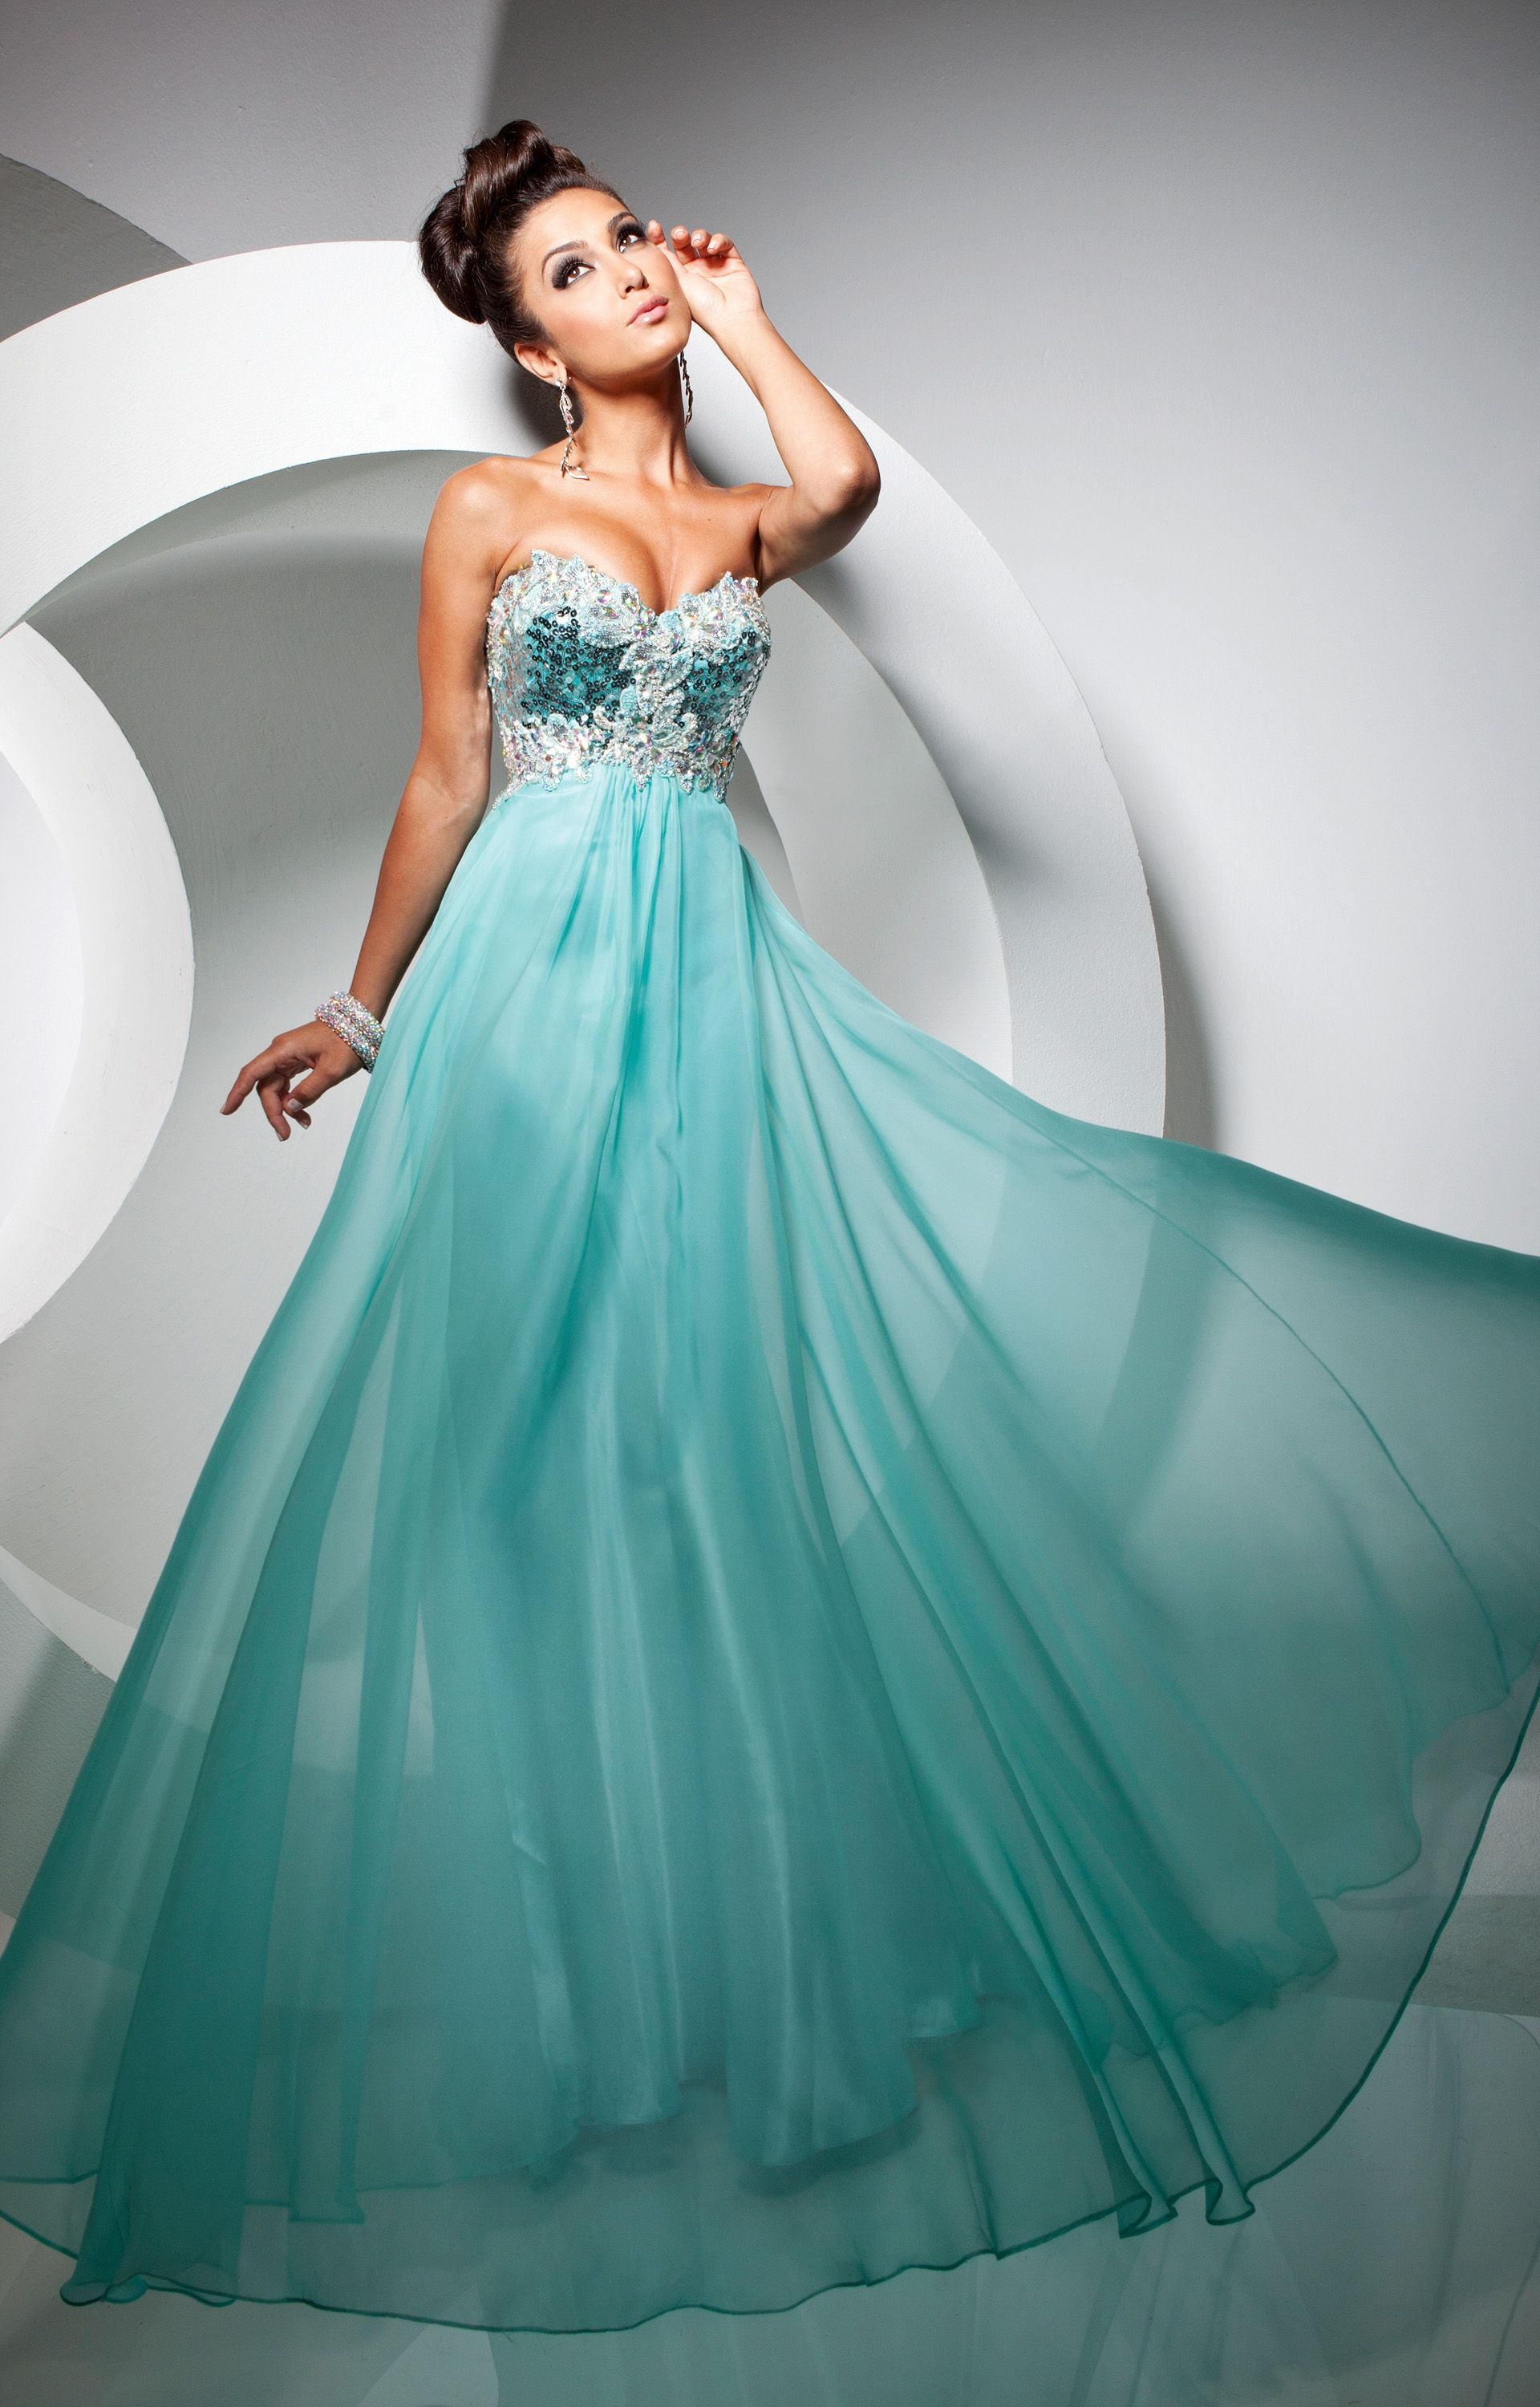 Tony Bowls Dress 113729 ~LOWEST PRICE GUARANTEE~ 0 2 4 6 8 10 12 14 ...